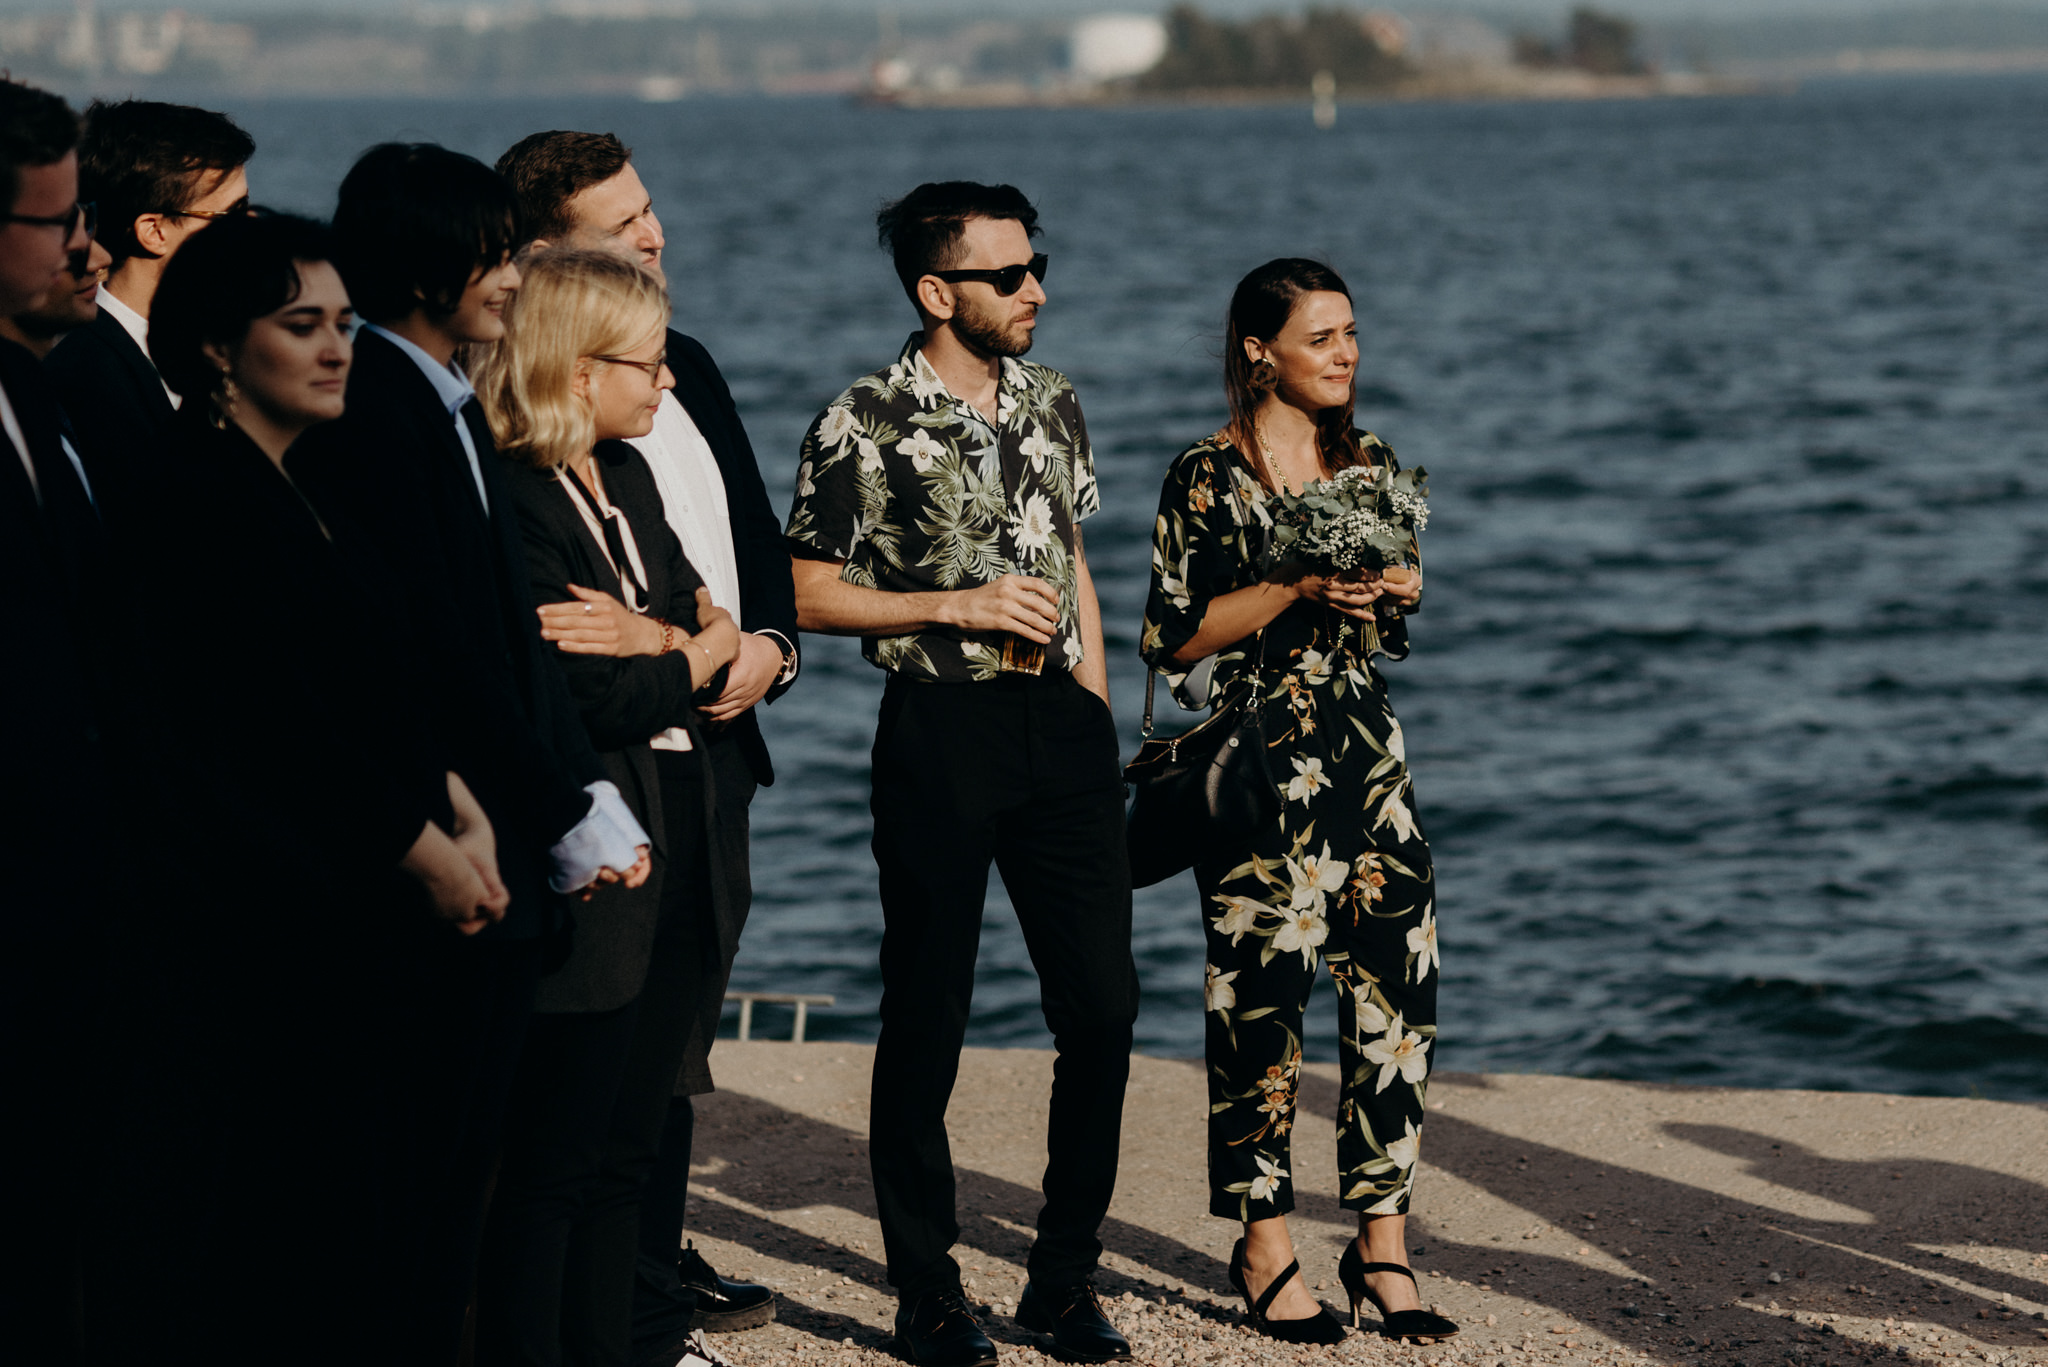 Guests cheering and clapping during outdoor wedding ceremony at Valkosaaren Telakka